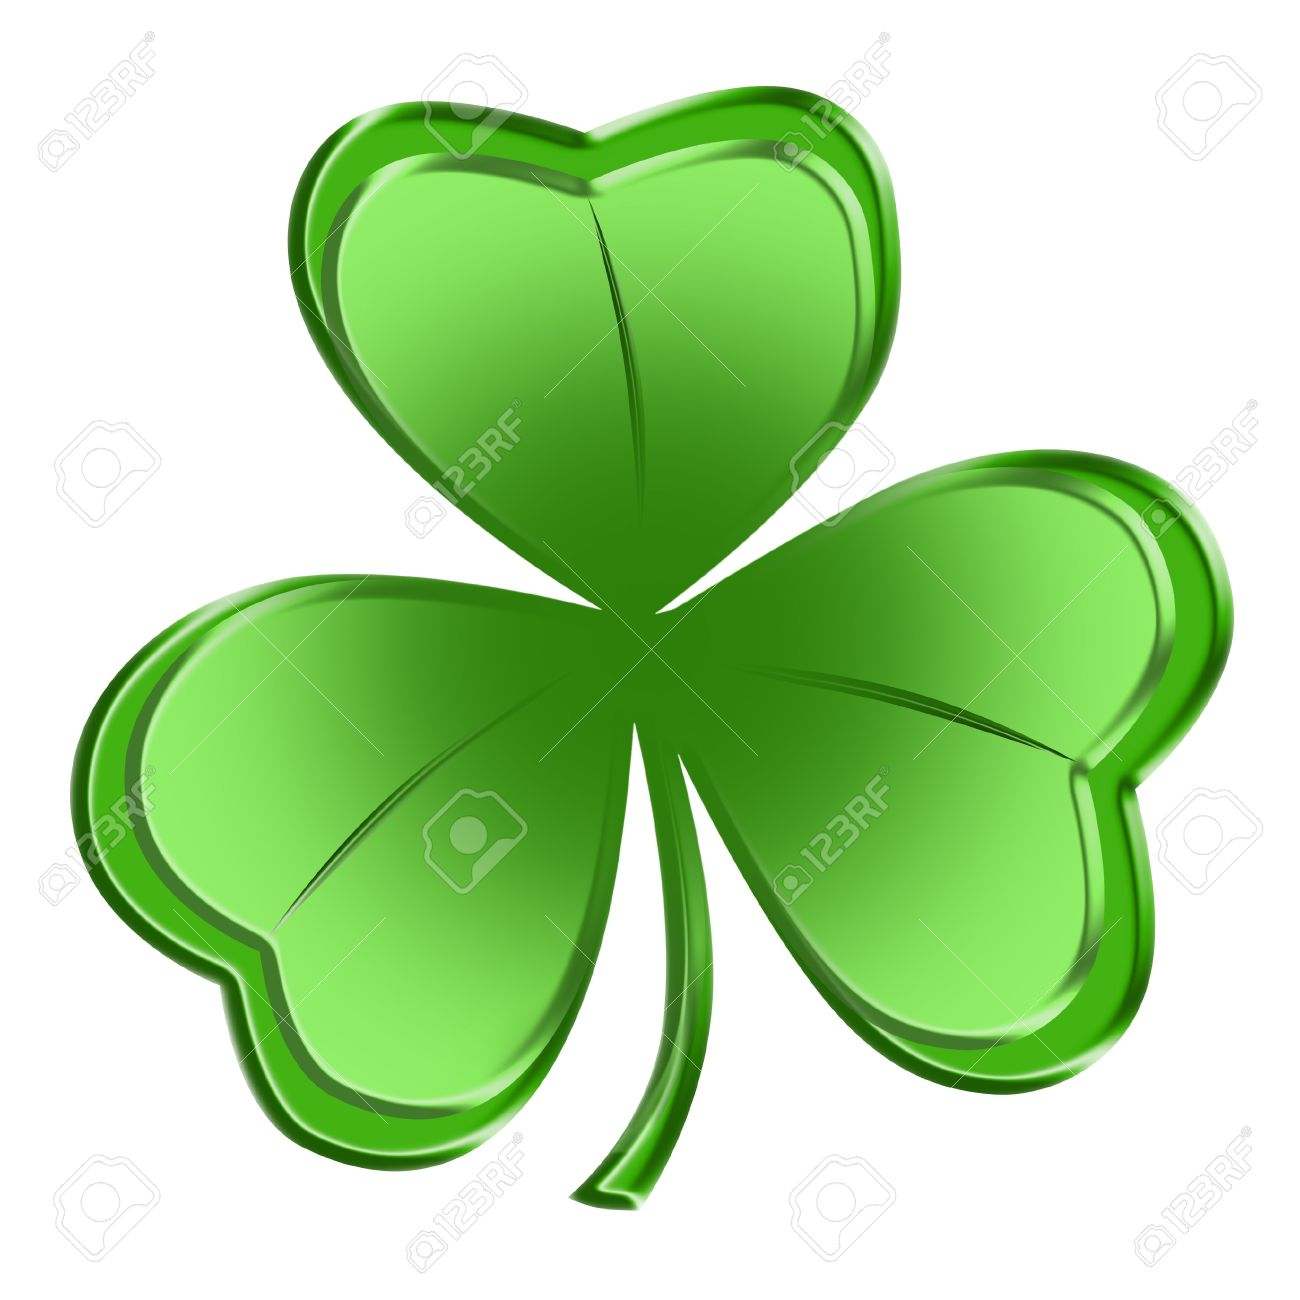 Bright Green Shamrock Isolated Over White Background Stock Photo.